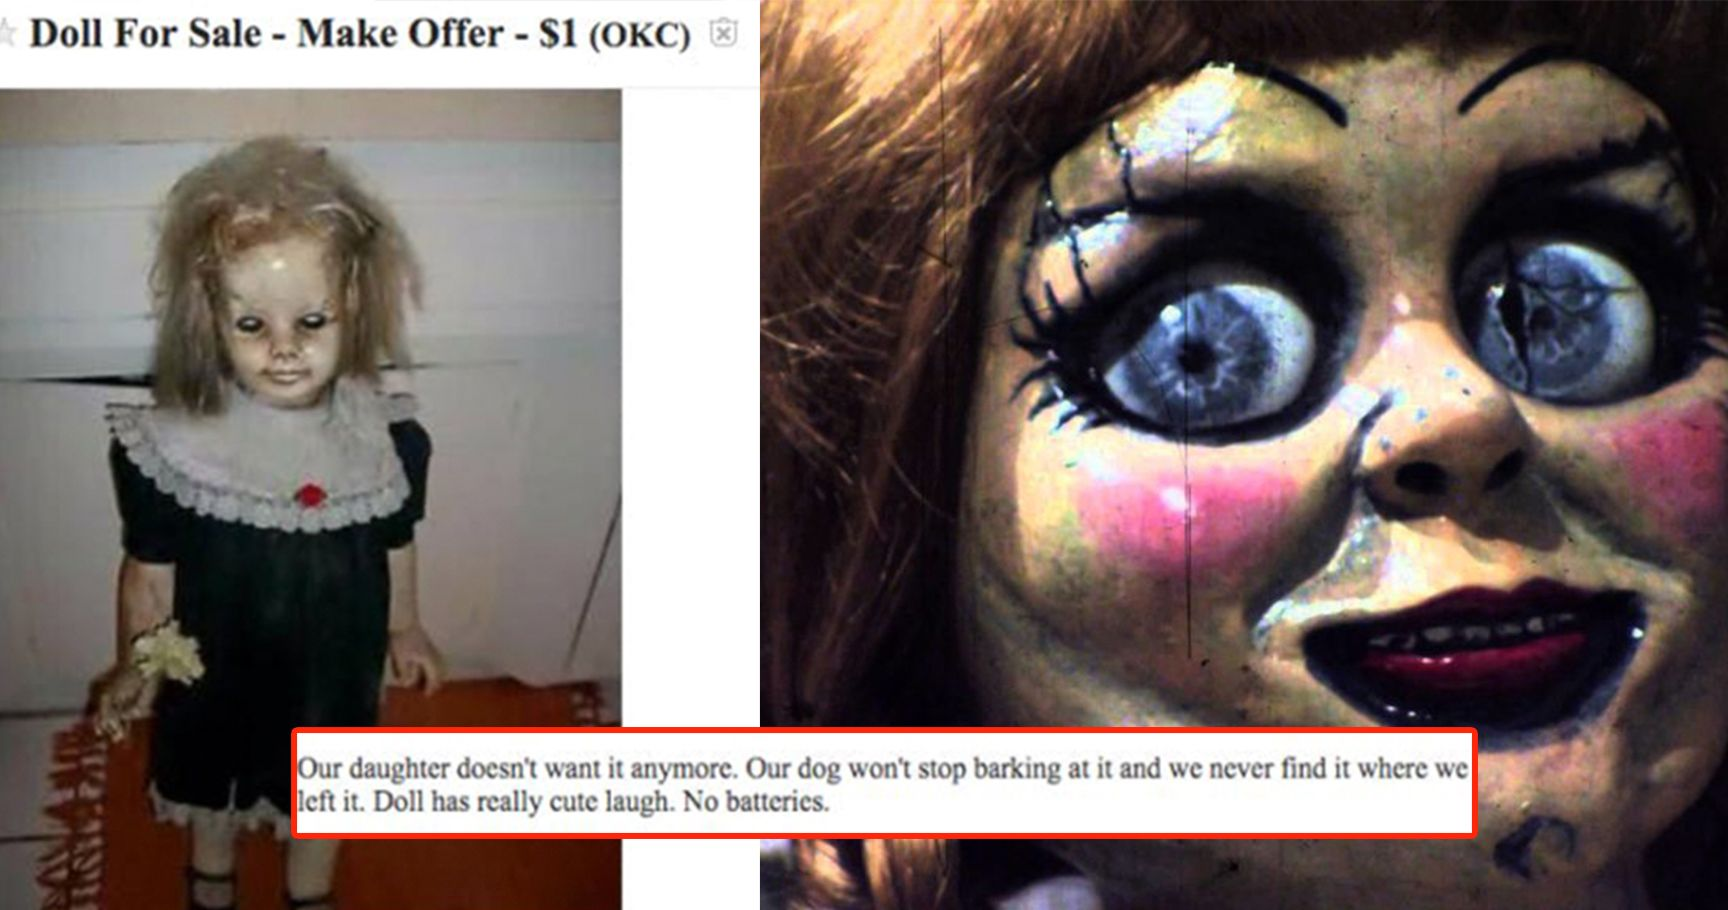 15 Of The Most Ridiculously WTF Craiglist Posts To Ever Grace The Internet